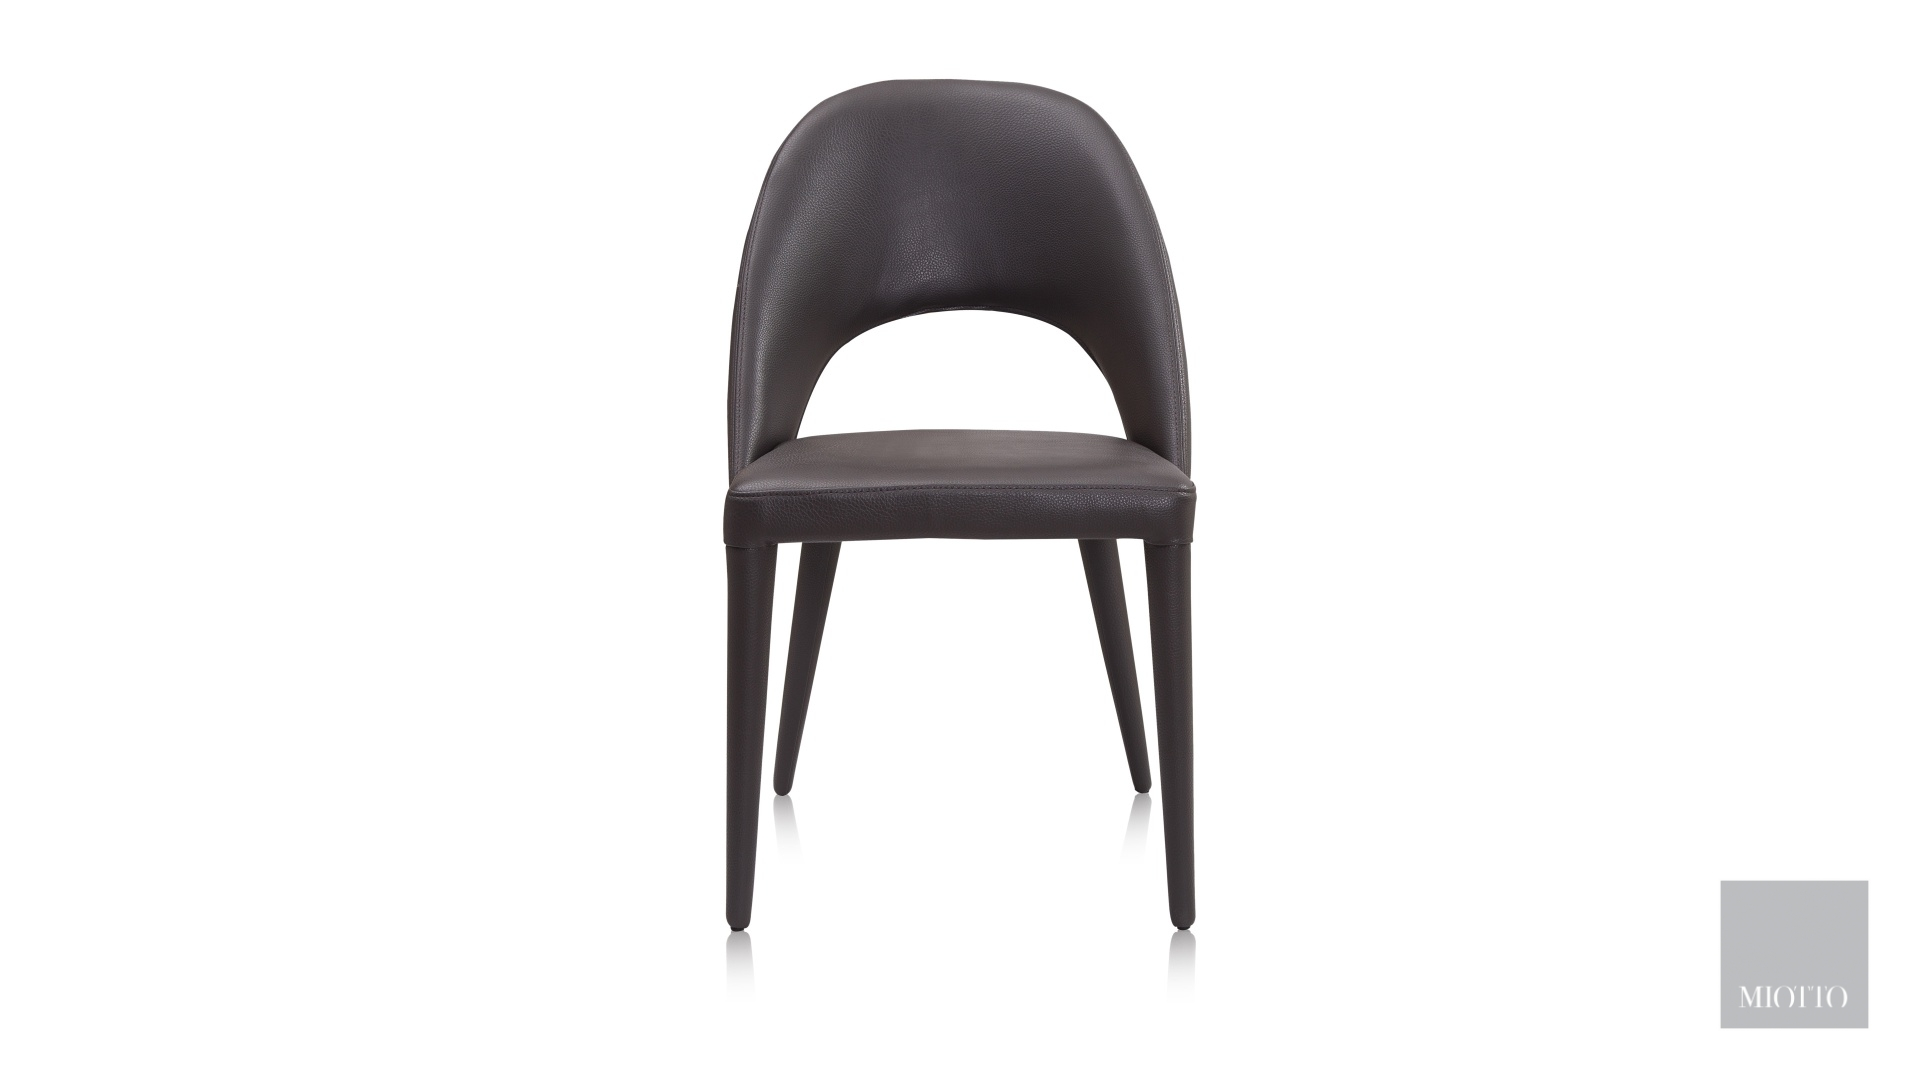 miotto_Salgari dining chair brown front miotto furniture